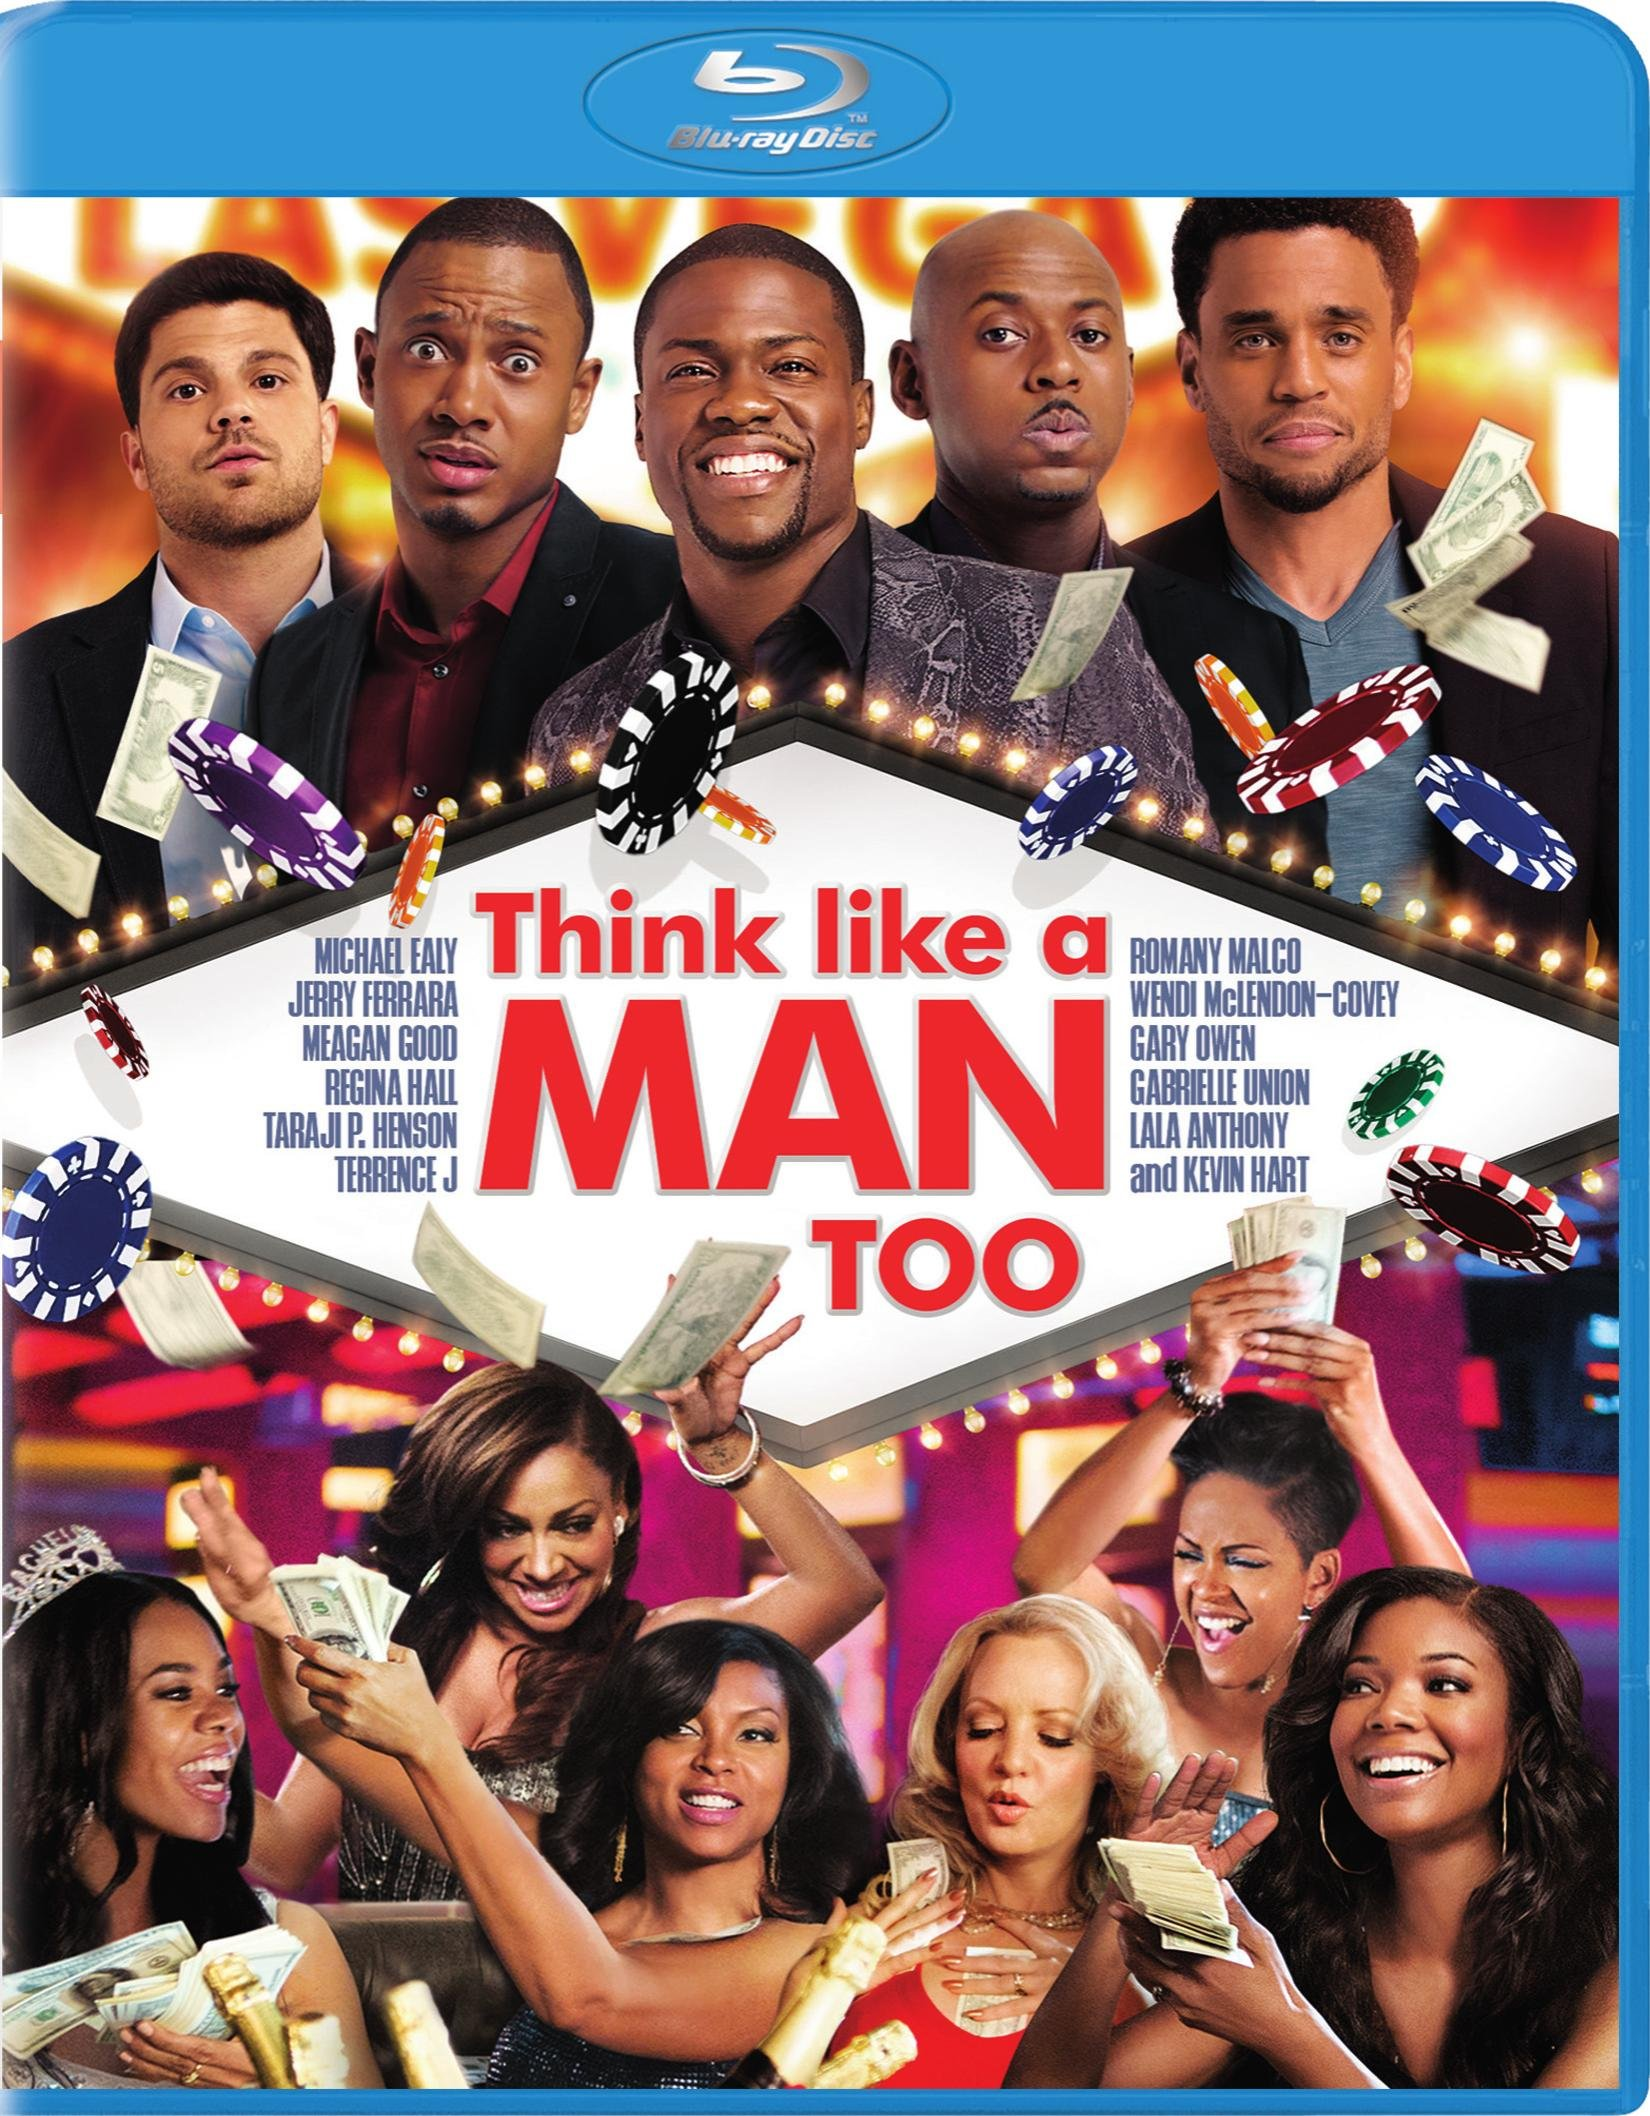 think like a man 2 free movie download